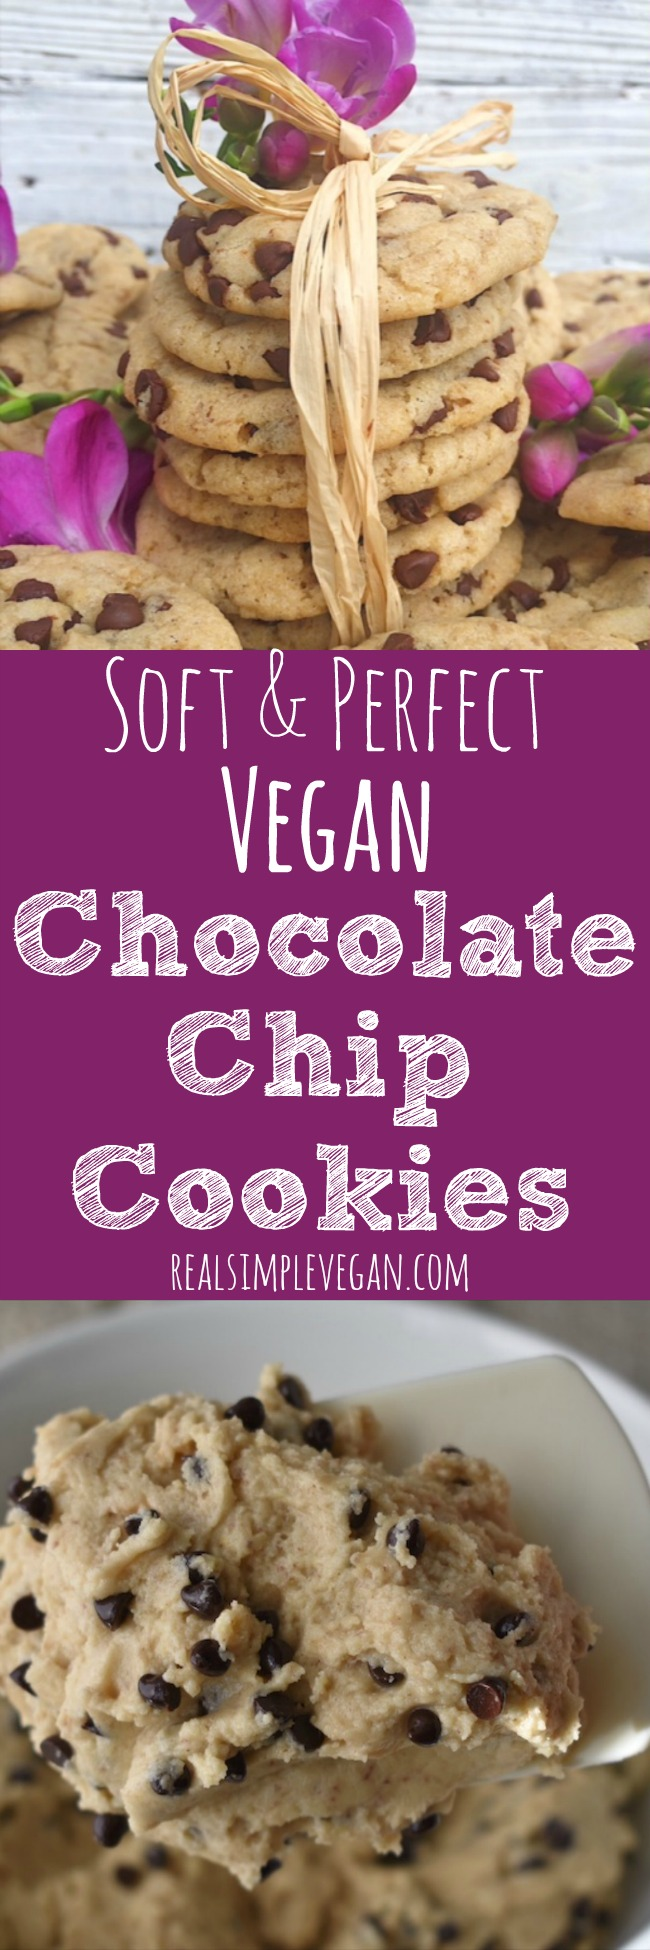 Soft & Perfect Vegan Chocolate Chip Cookies